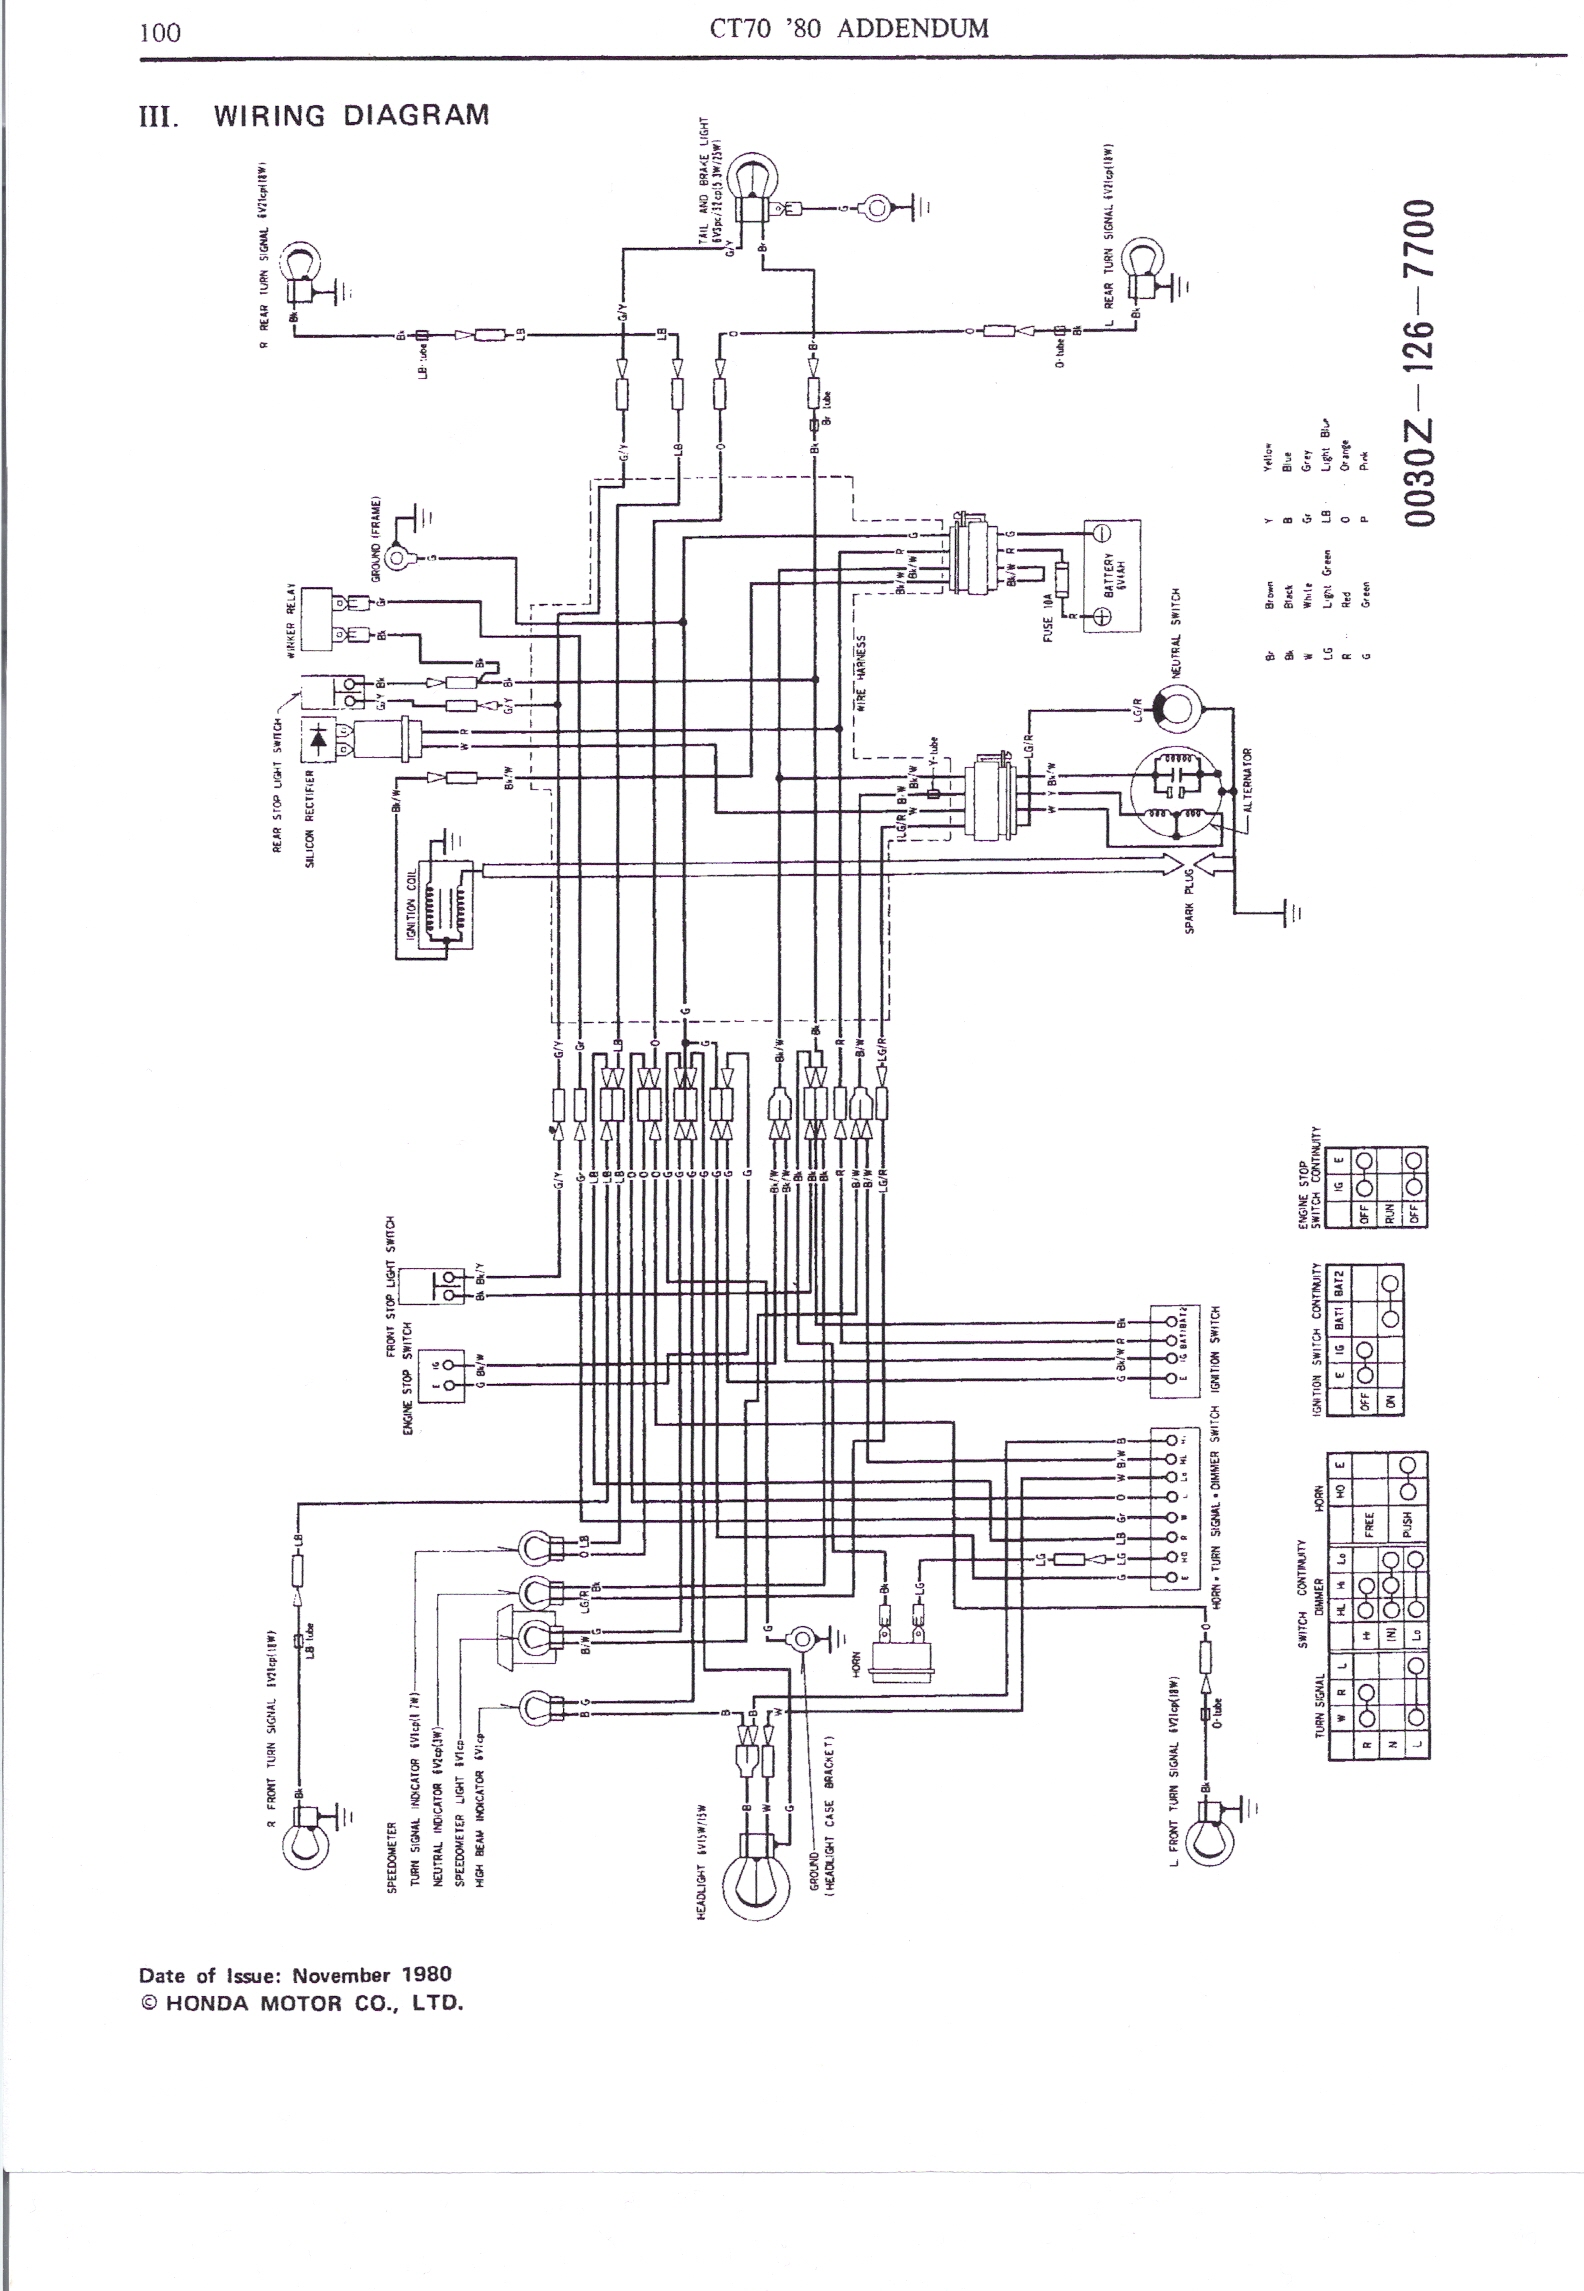 wanted wiring diagram for a ct wire diagram jpg views 1491 size